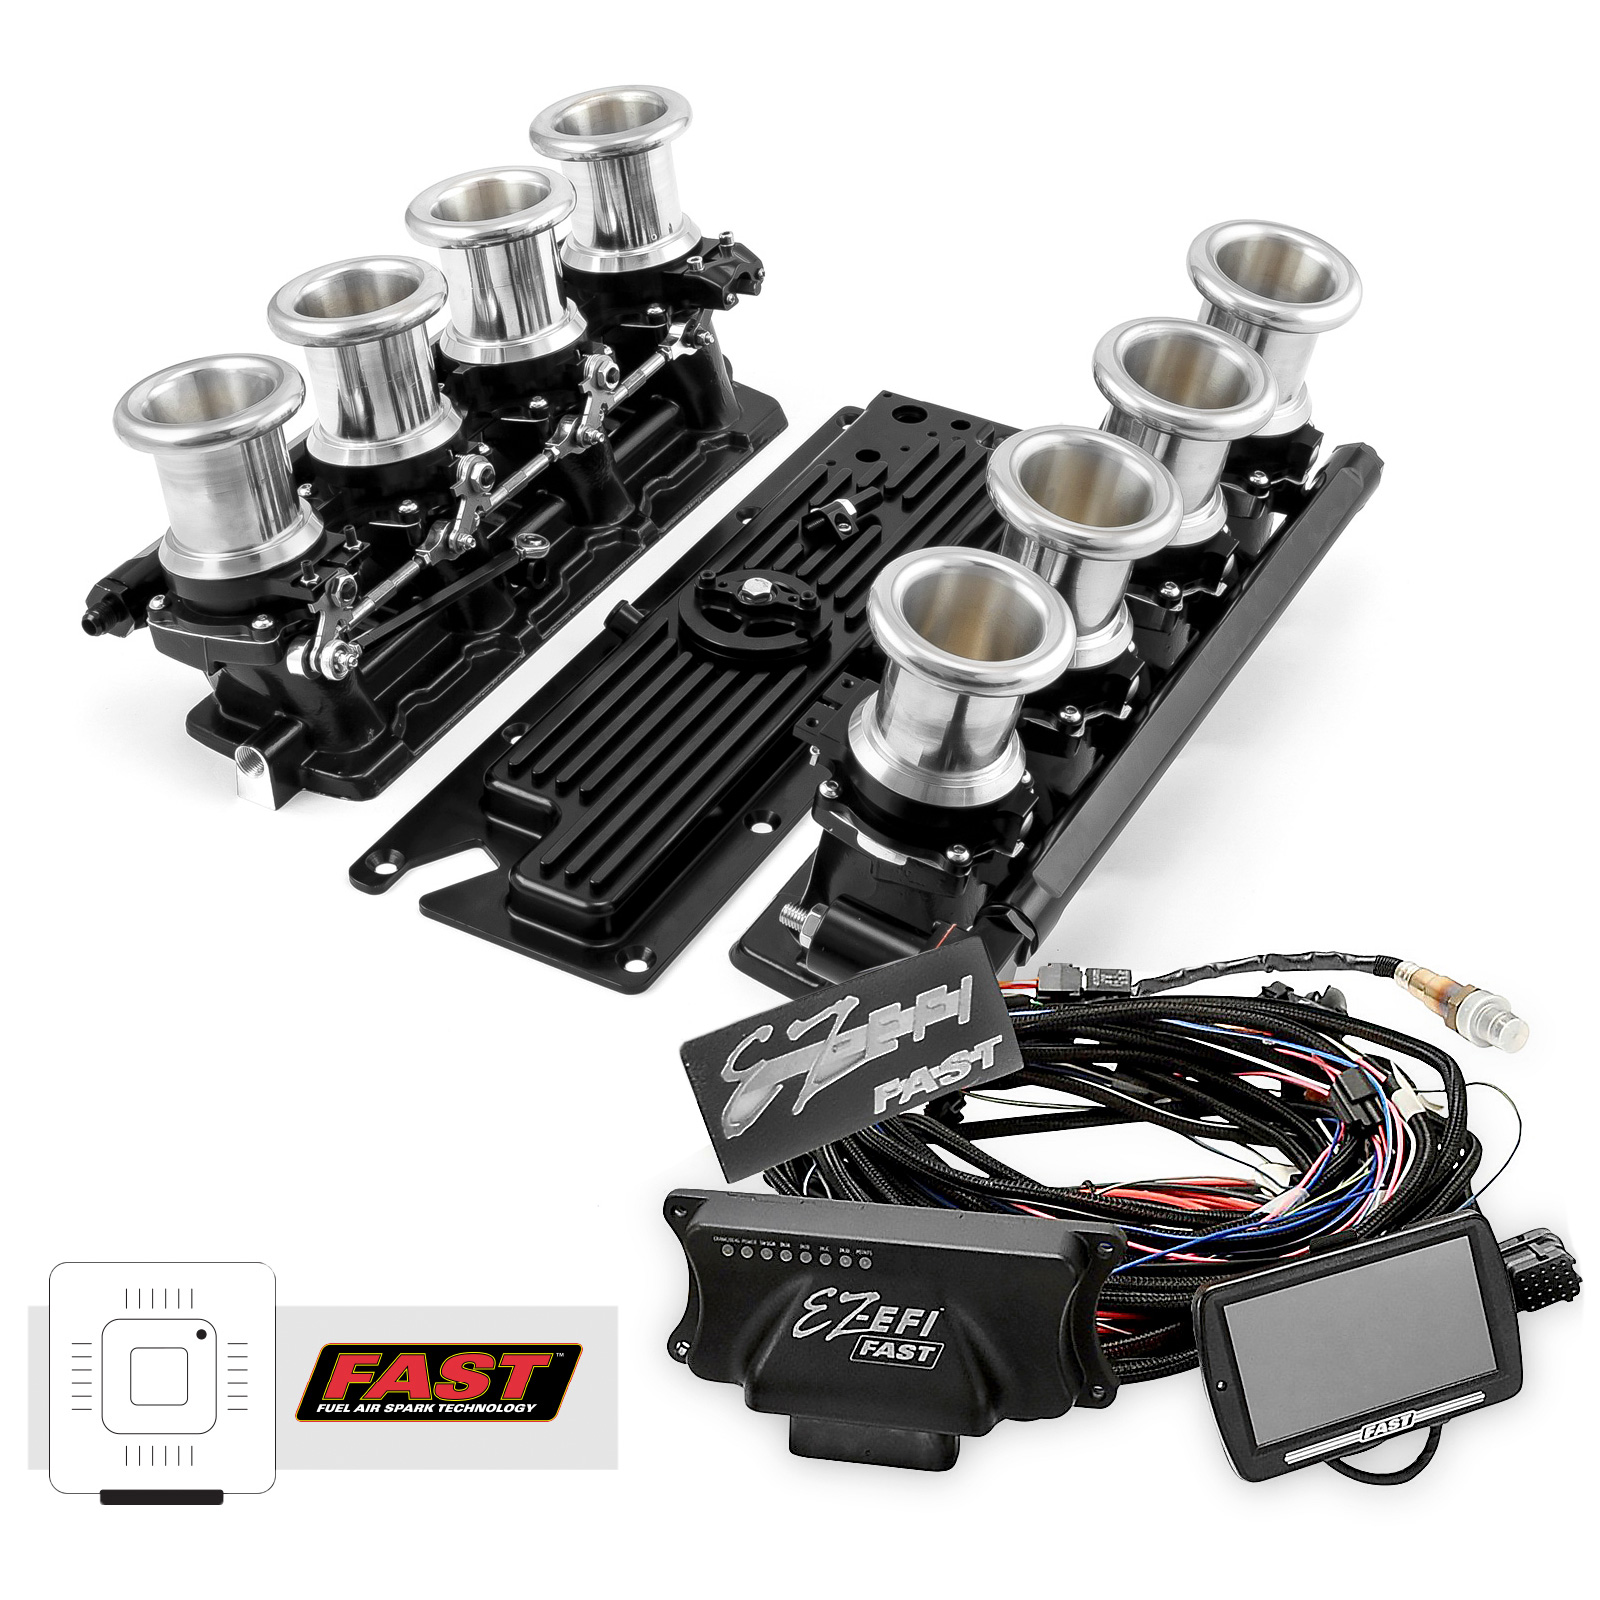 Chevy GM LS1 Downdraft + FAST EZ-EFI 2.0 Fuel Injection System - Black